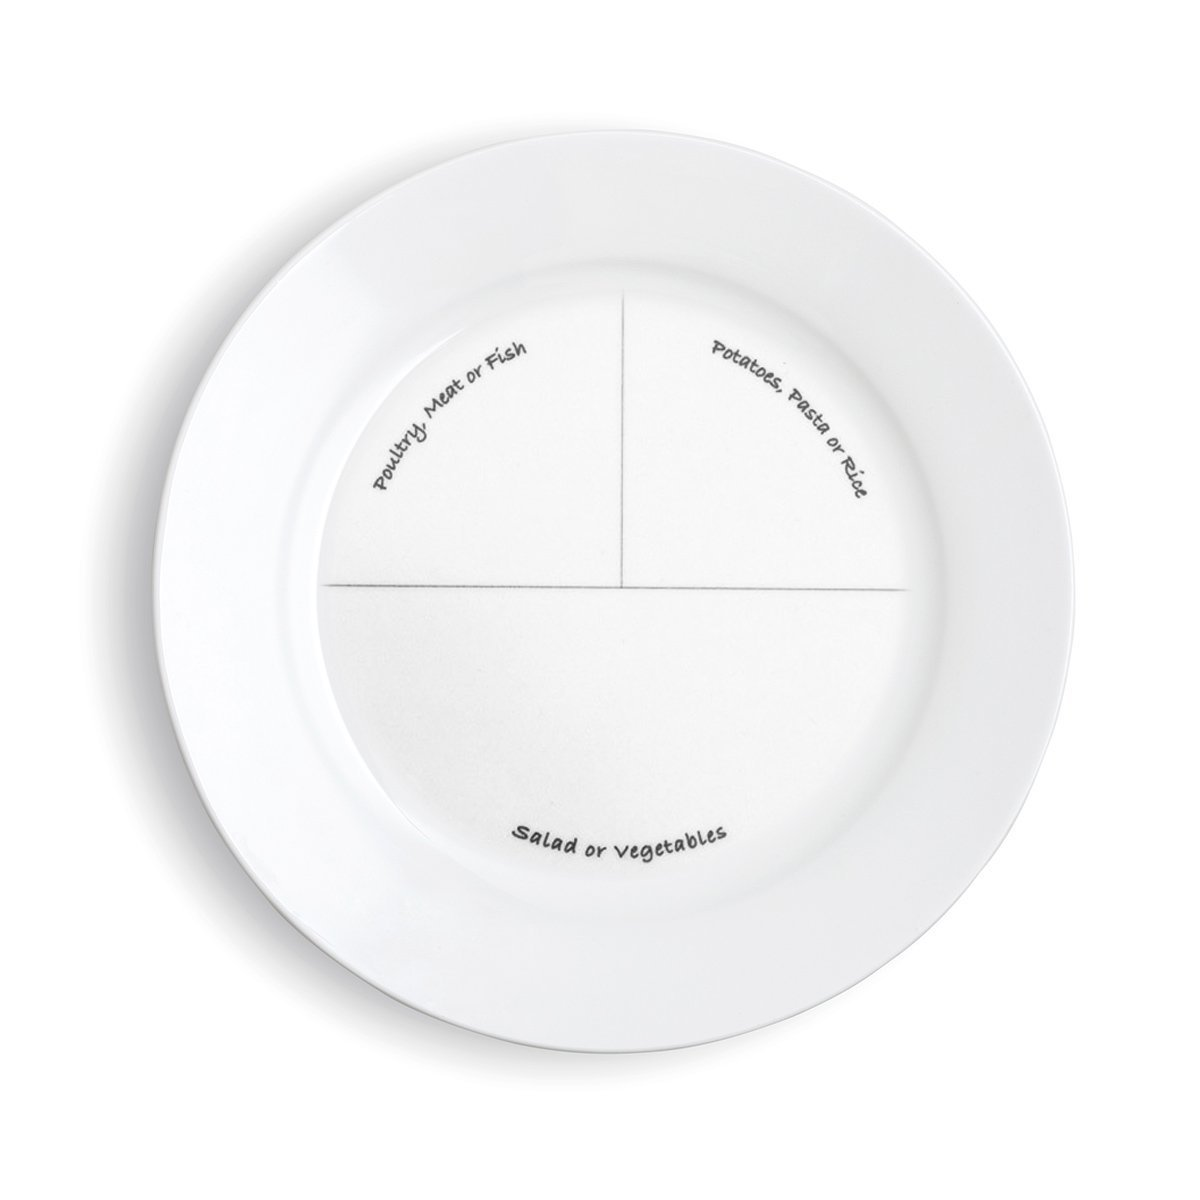 Marianne's Plate (Melamine Portion Plate) Plus Information Pamphlet